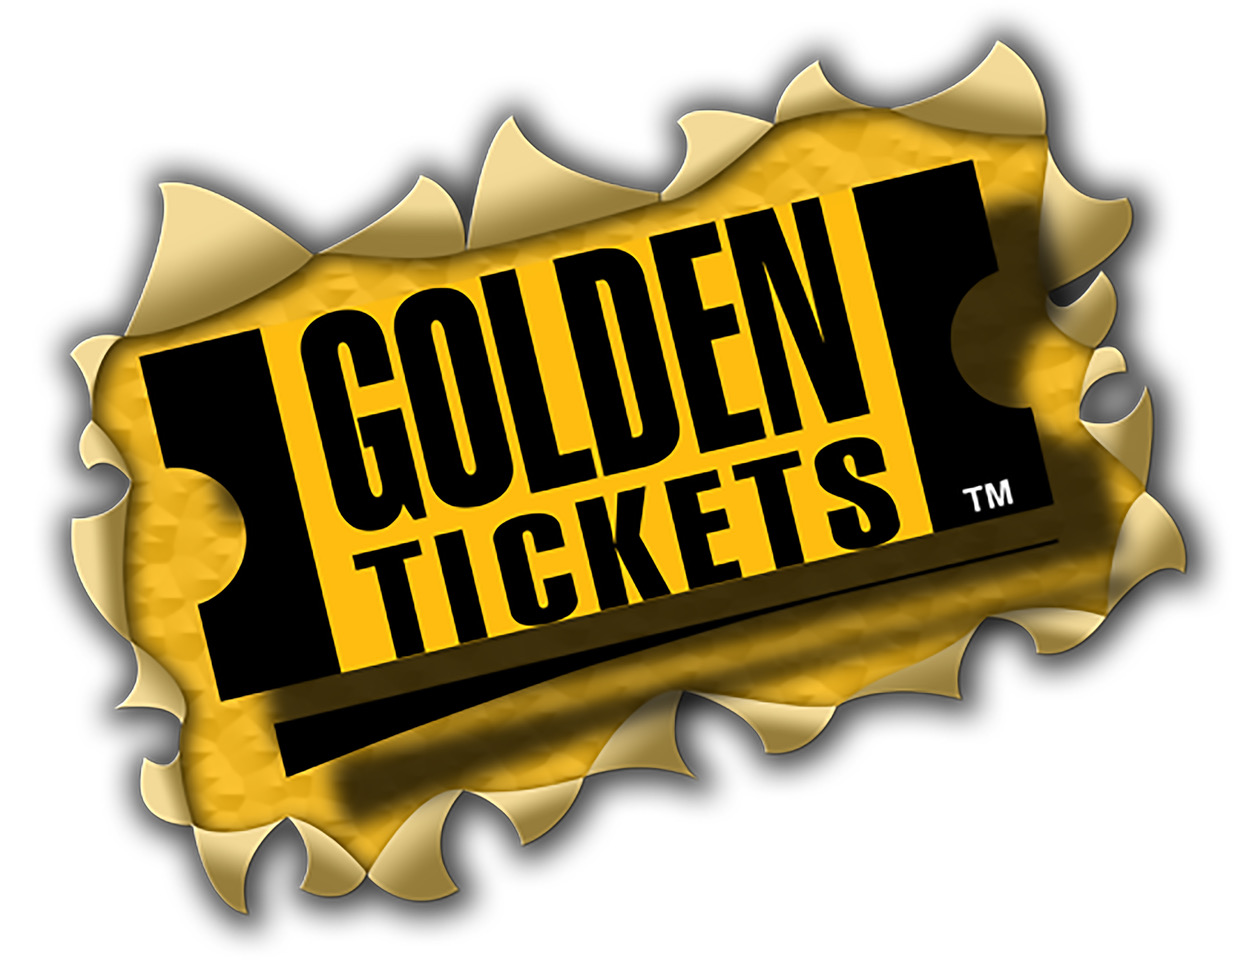 Golden Tickets&w=115&h=100